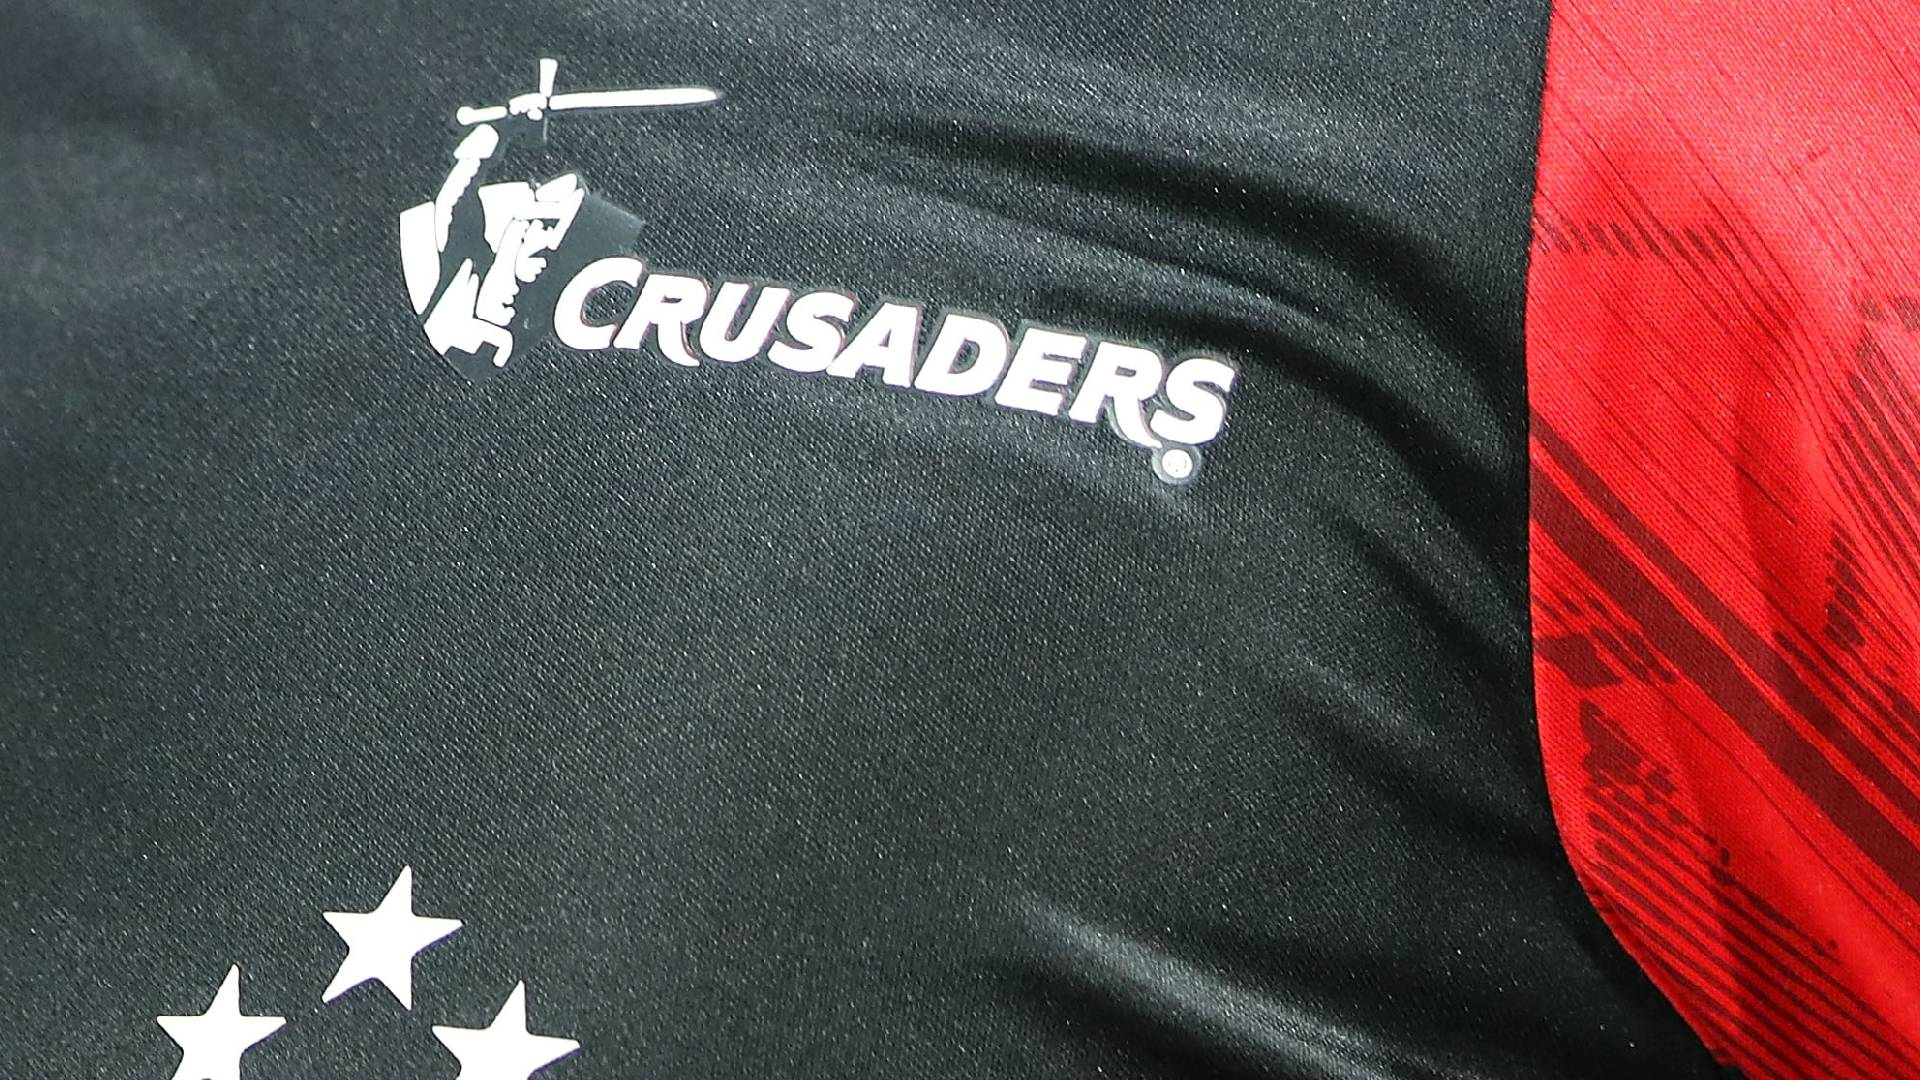 Crusaders to change logo for 2020 campaign.